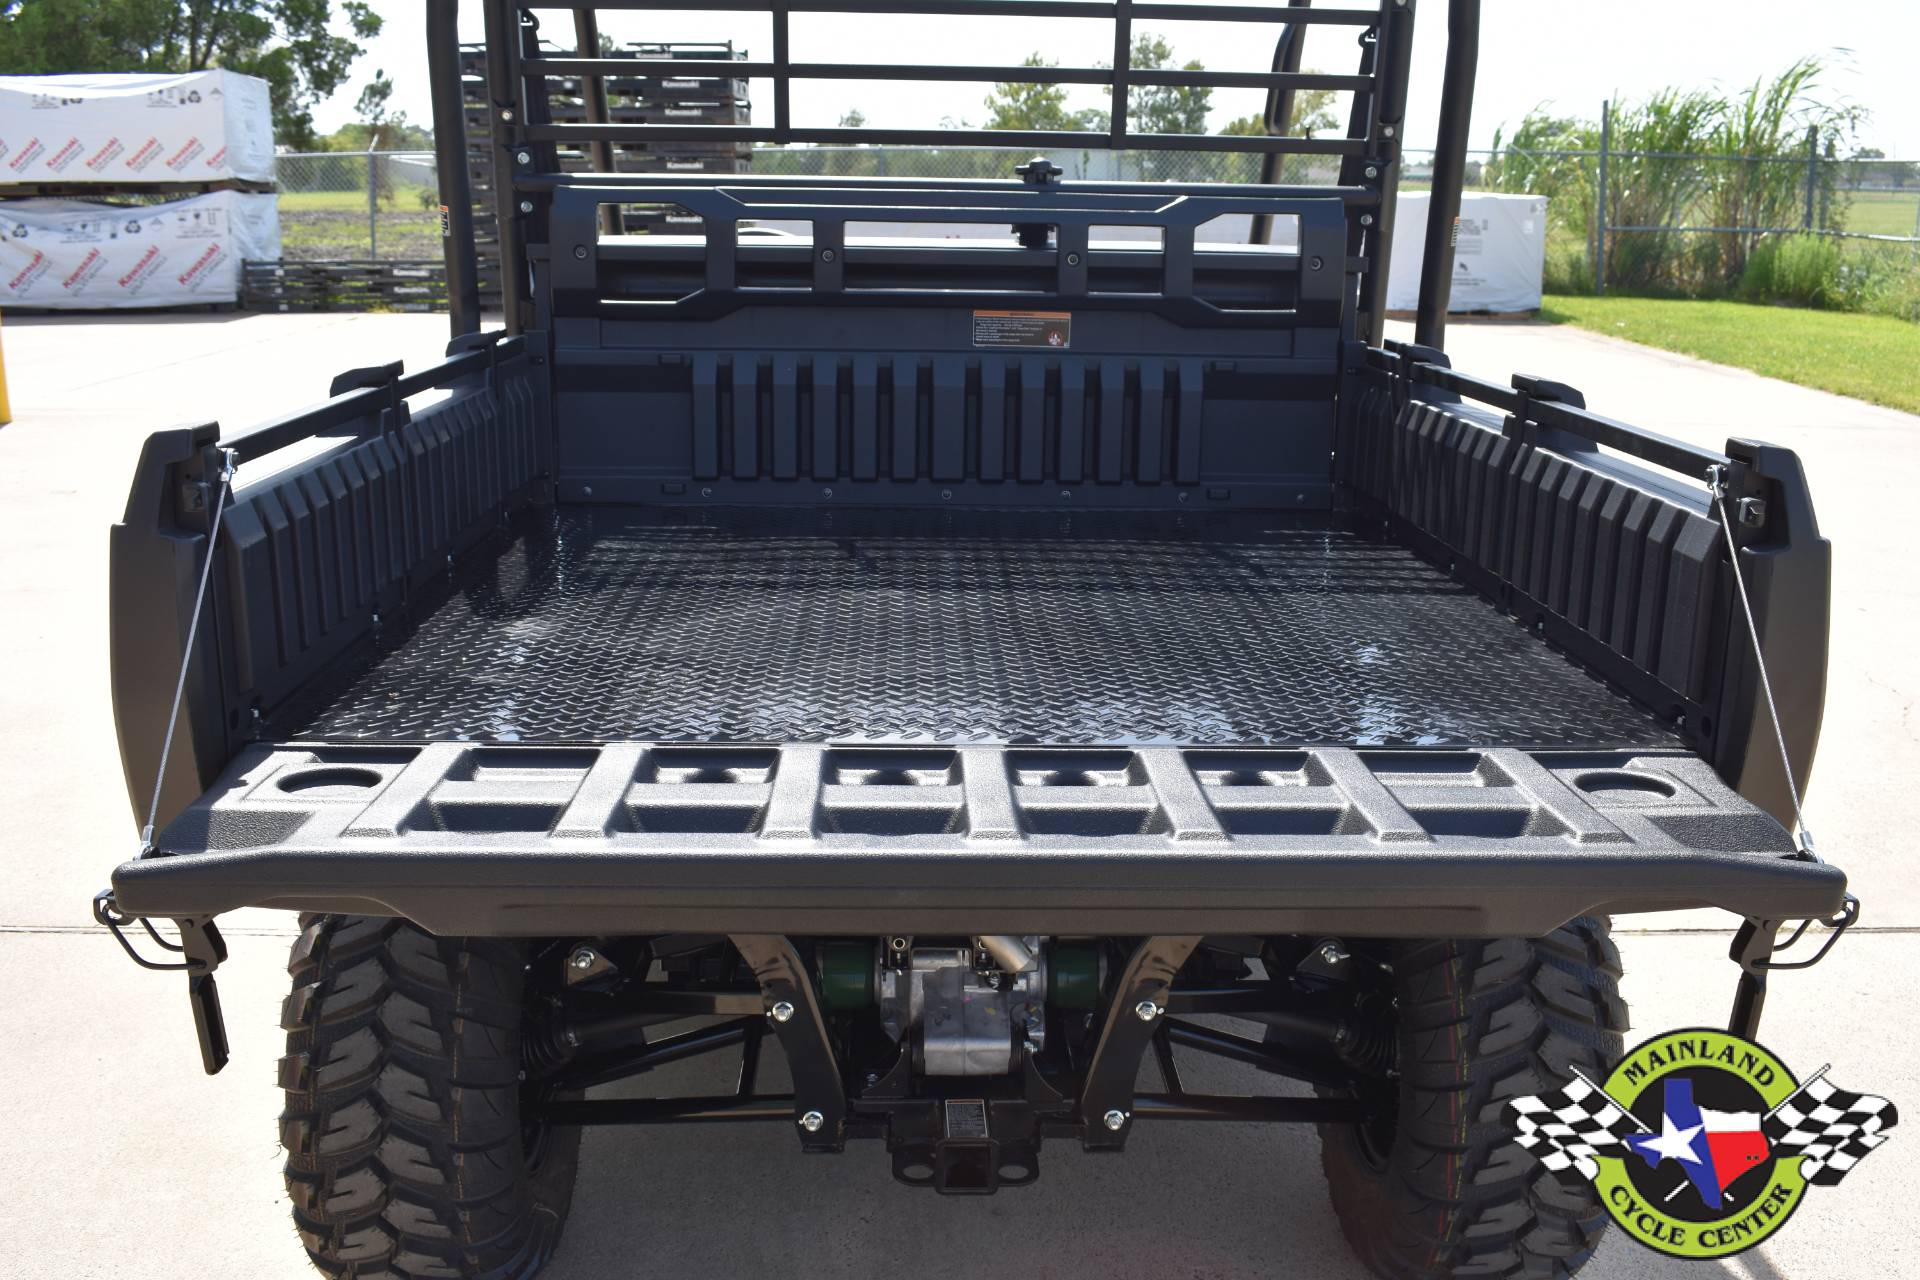 2020 Kawasaki Mule PRO-FX EPS in La Marque, Texas - Photo 11